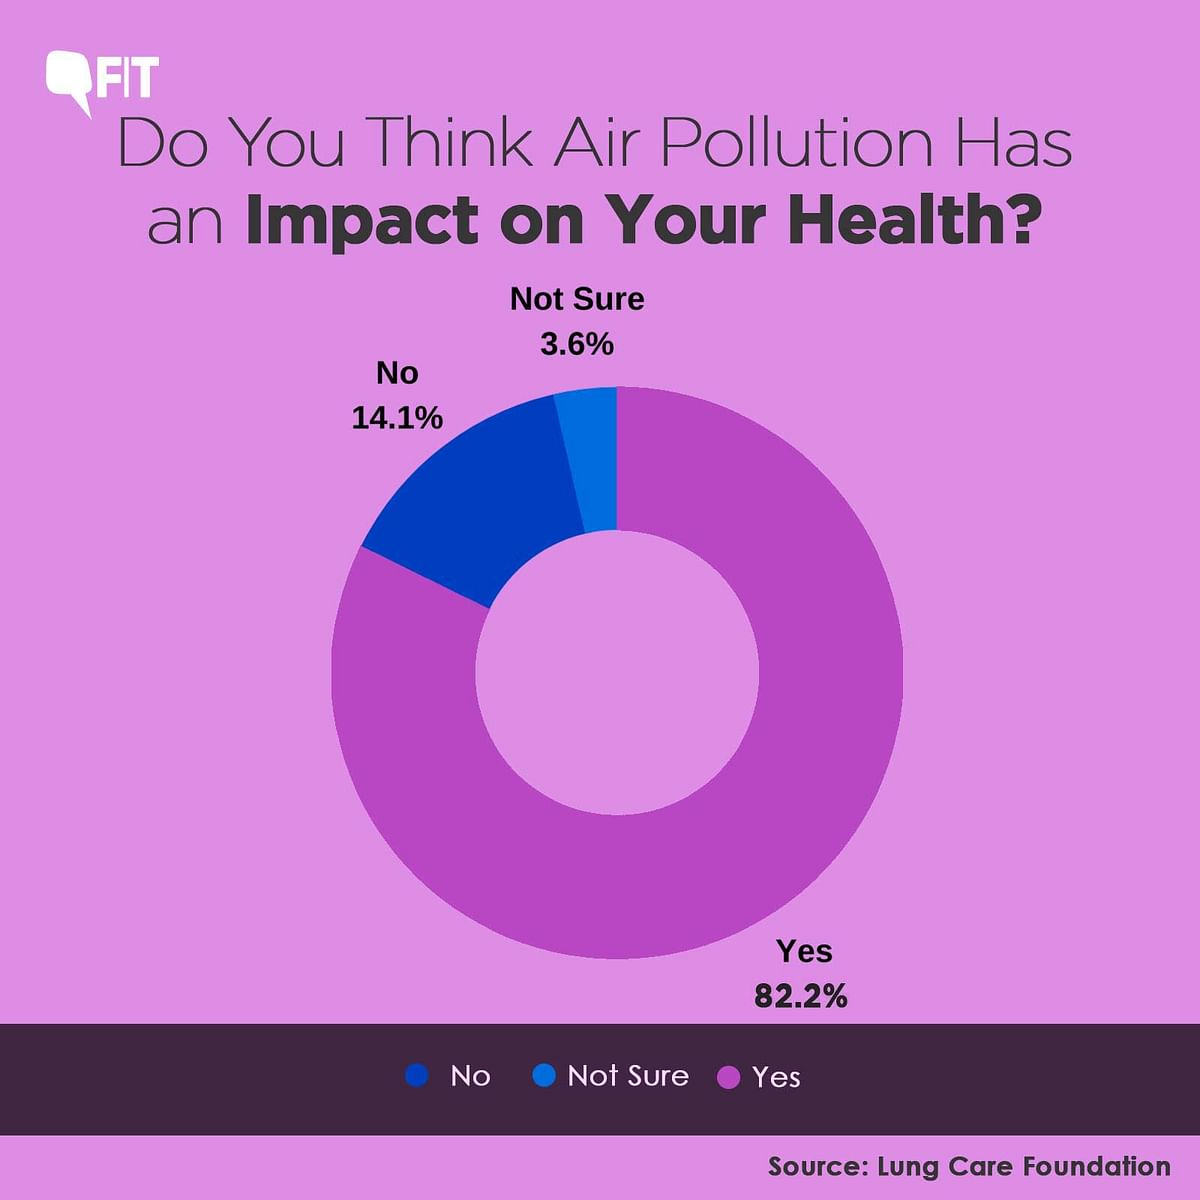 Source: Lung Care Foundation